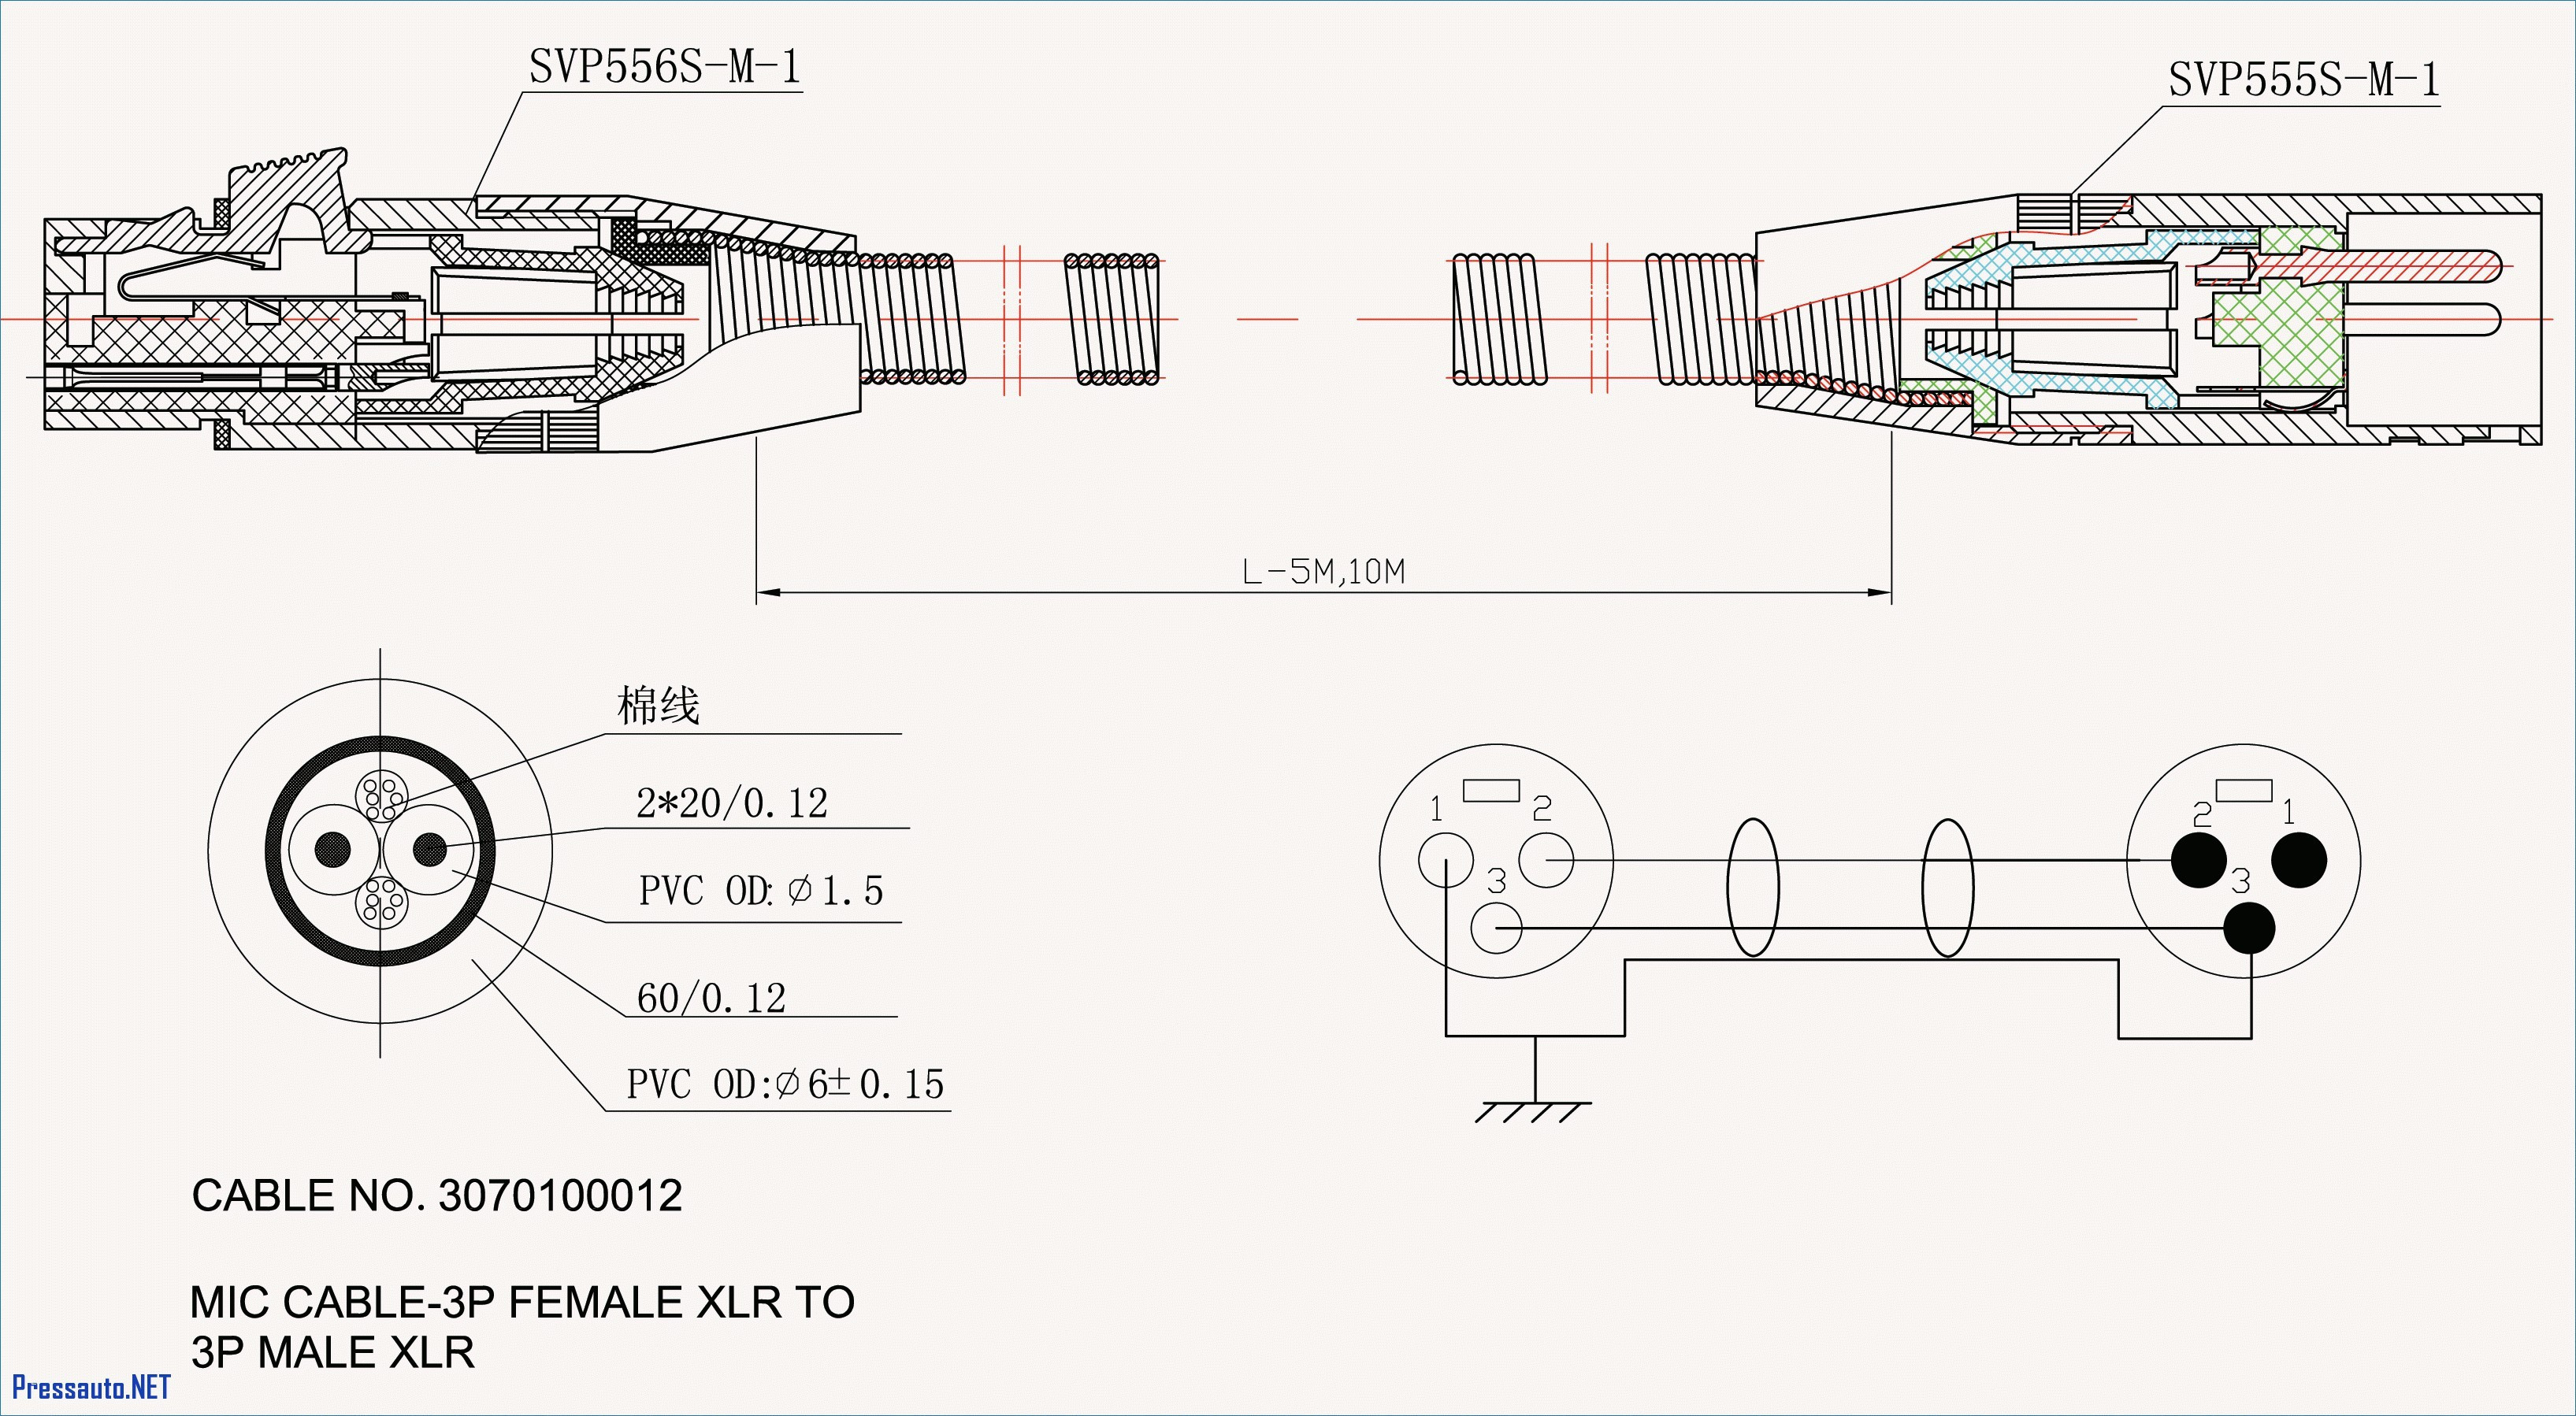 2005 Ford F150 Exhaust System Diagram – Simple Wiring Diagram - 2005 Ford F150 Trailer Wiring Harness Diagram